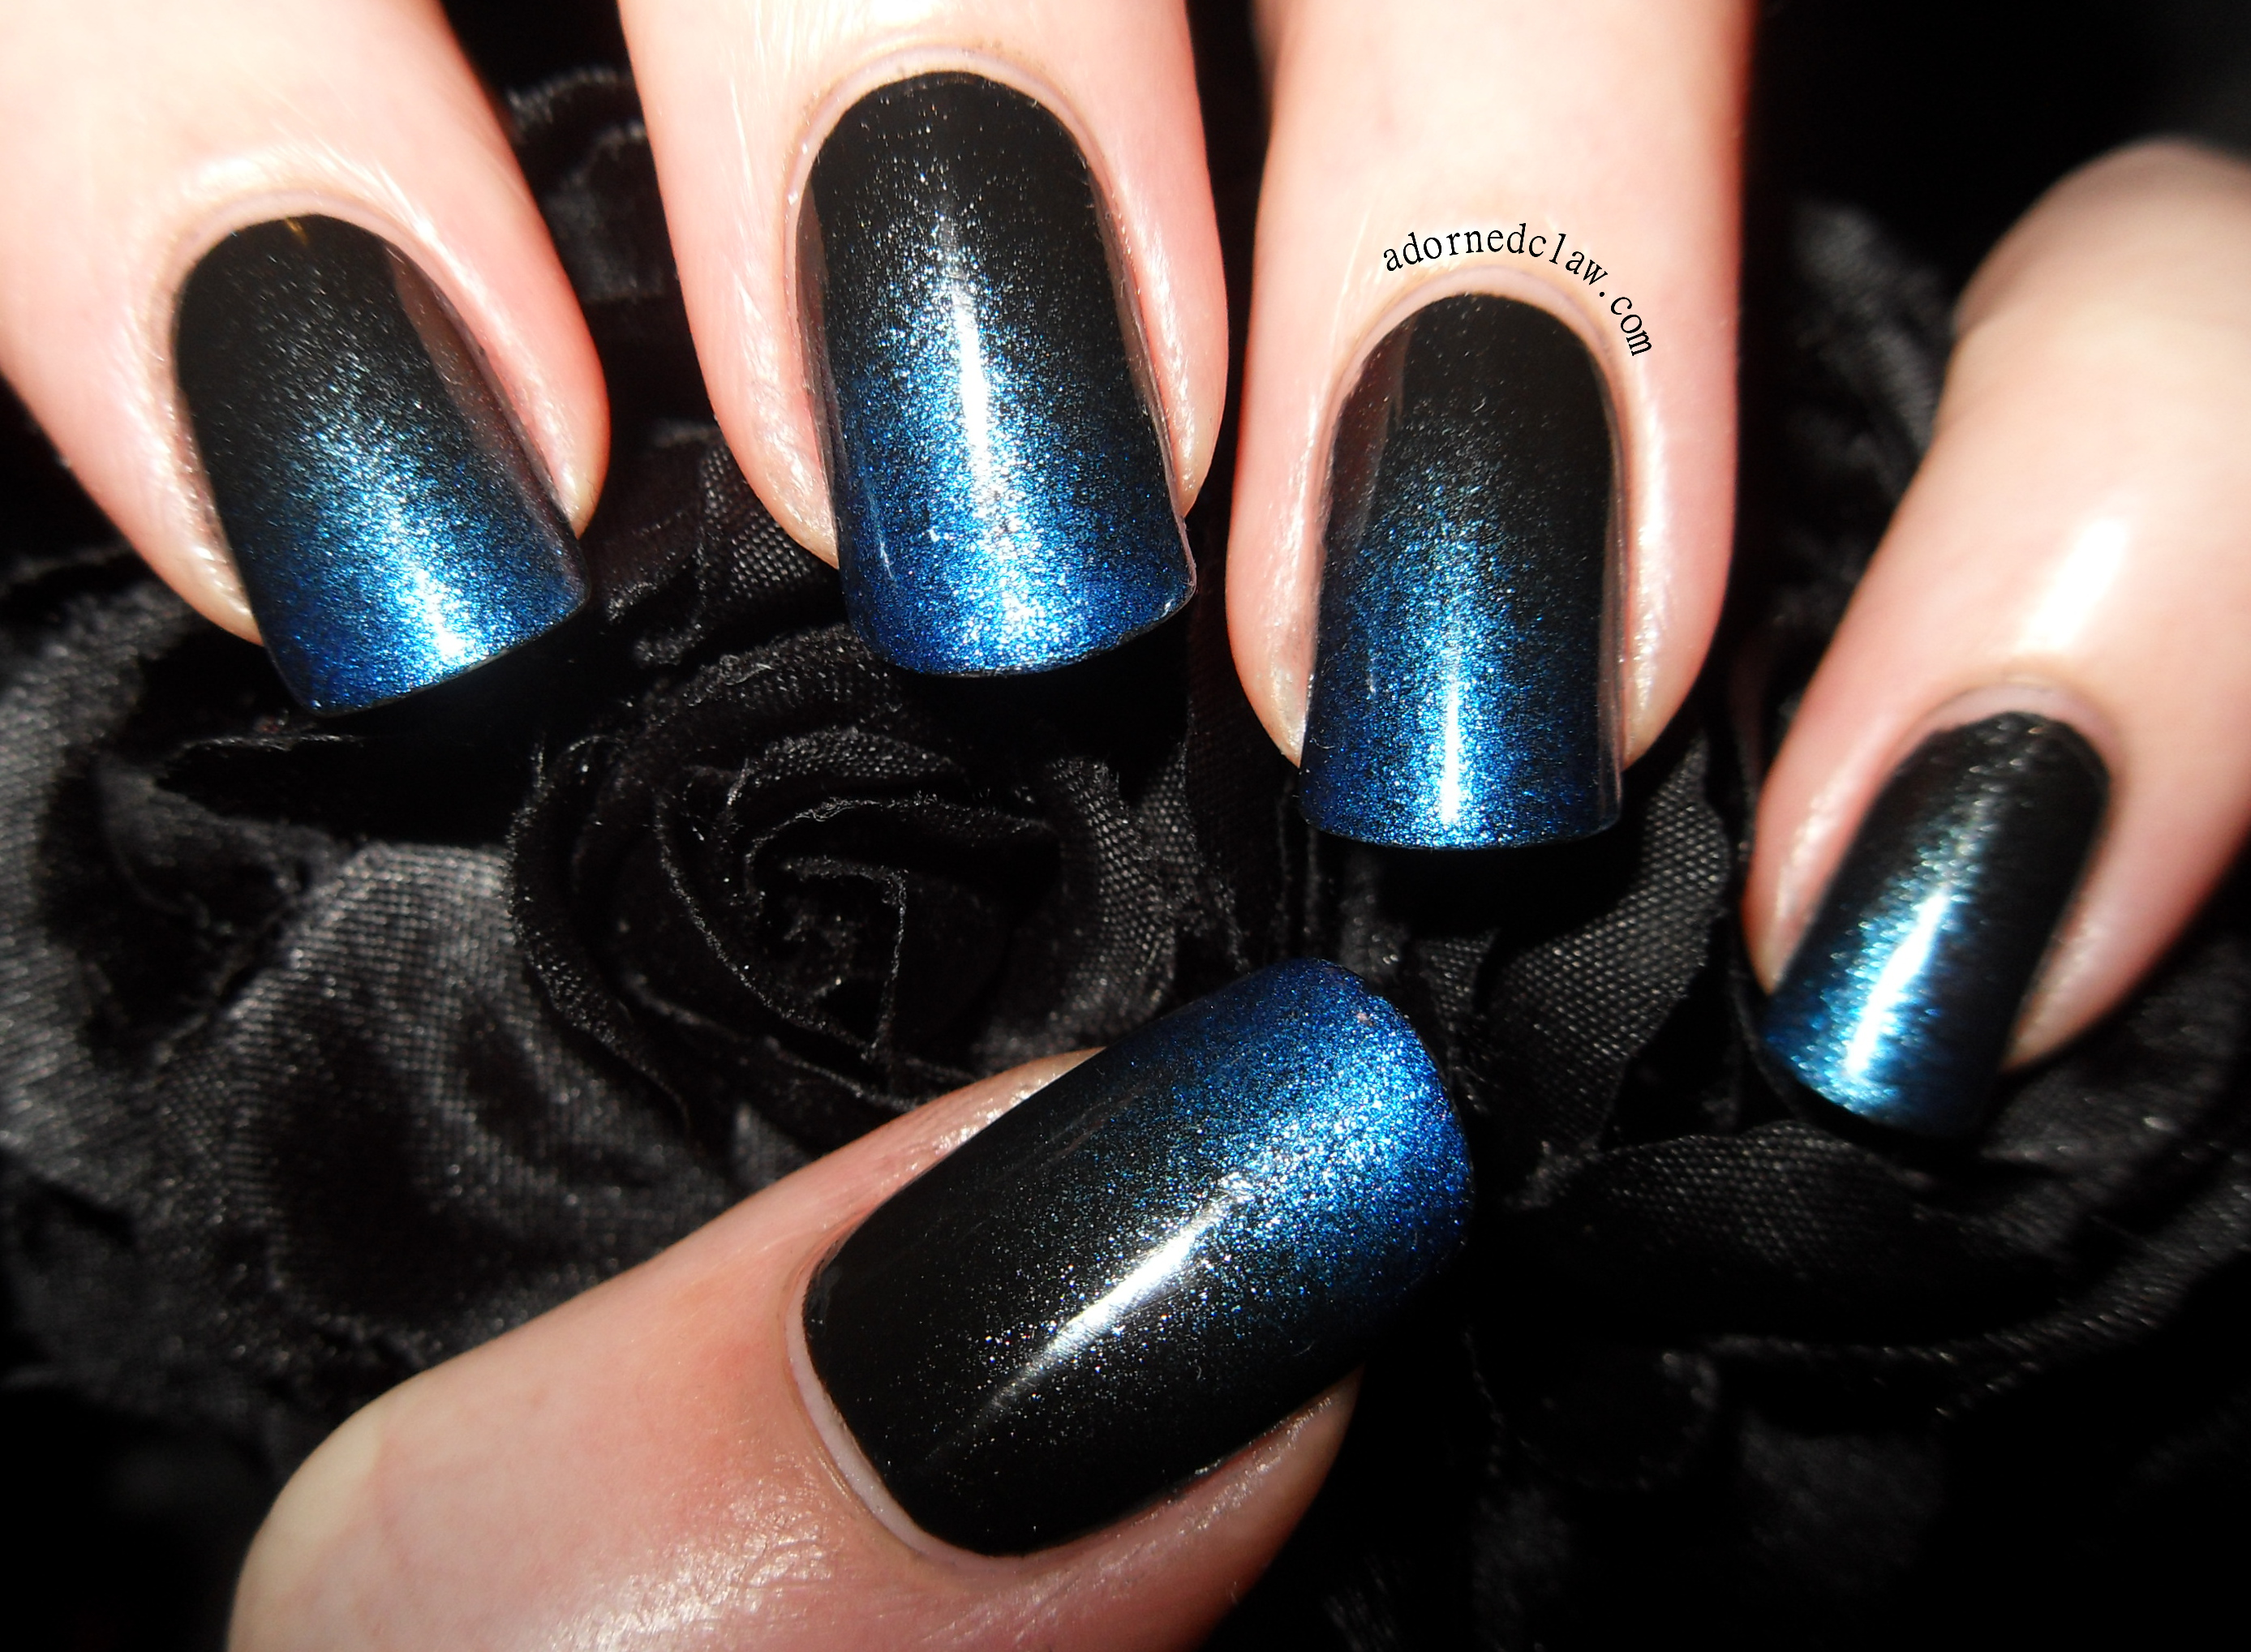 Black and Blue Gradient… Or The Unfinished Nails! | The Adorned Claw